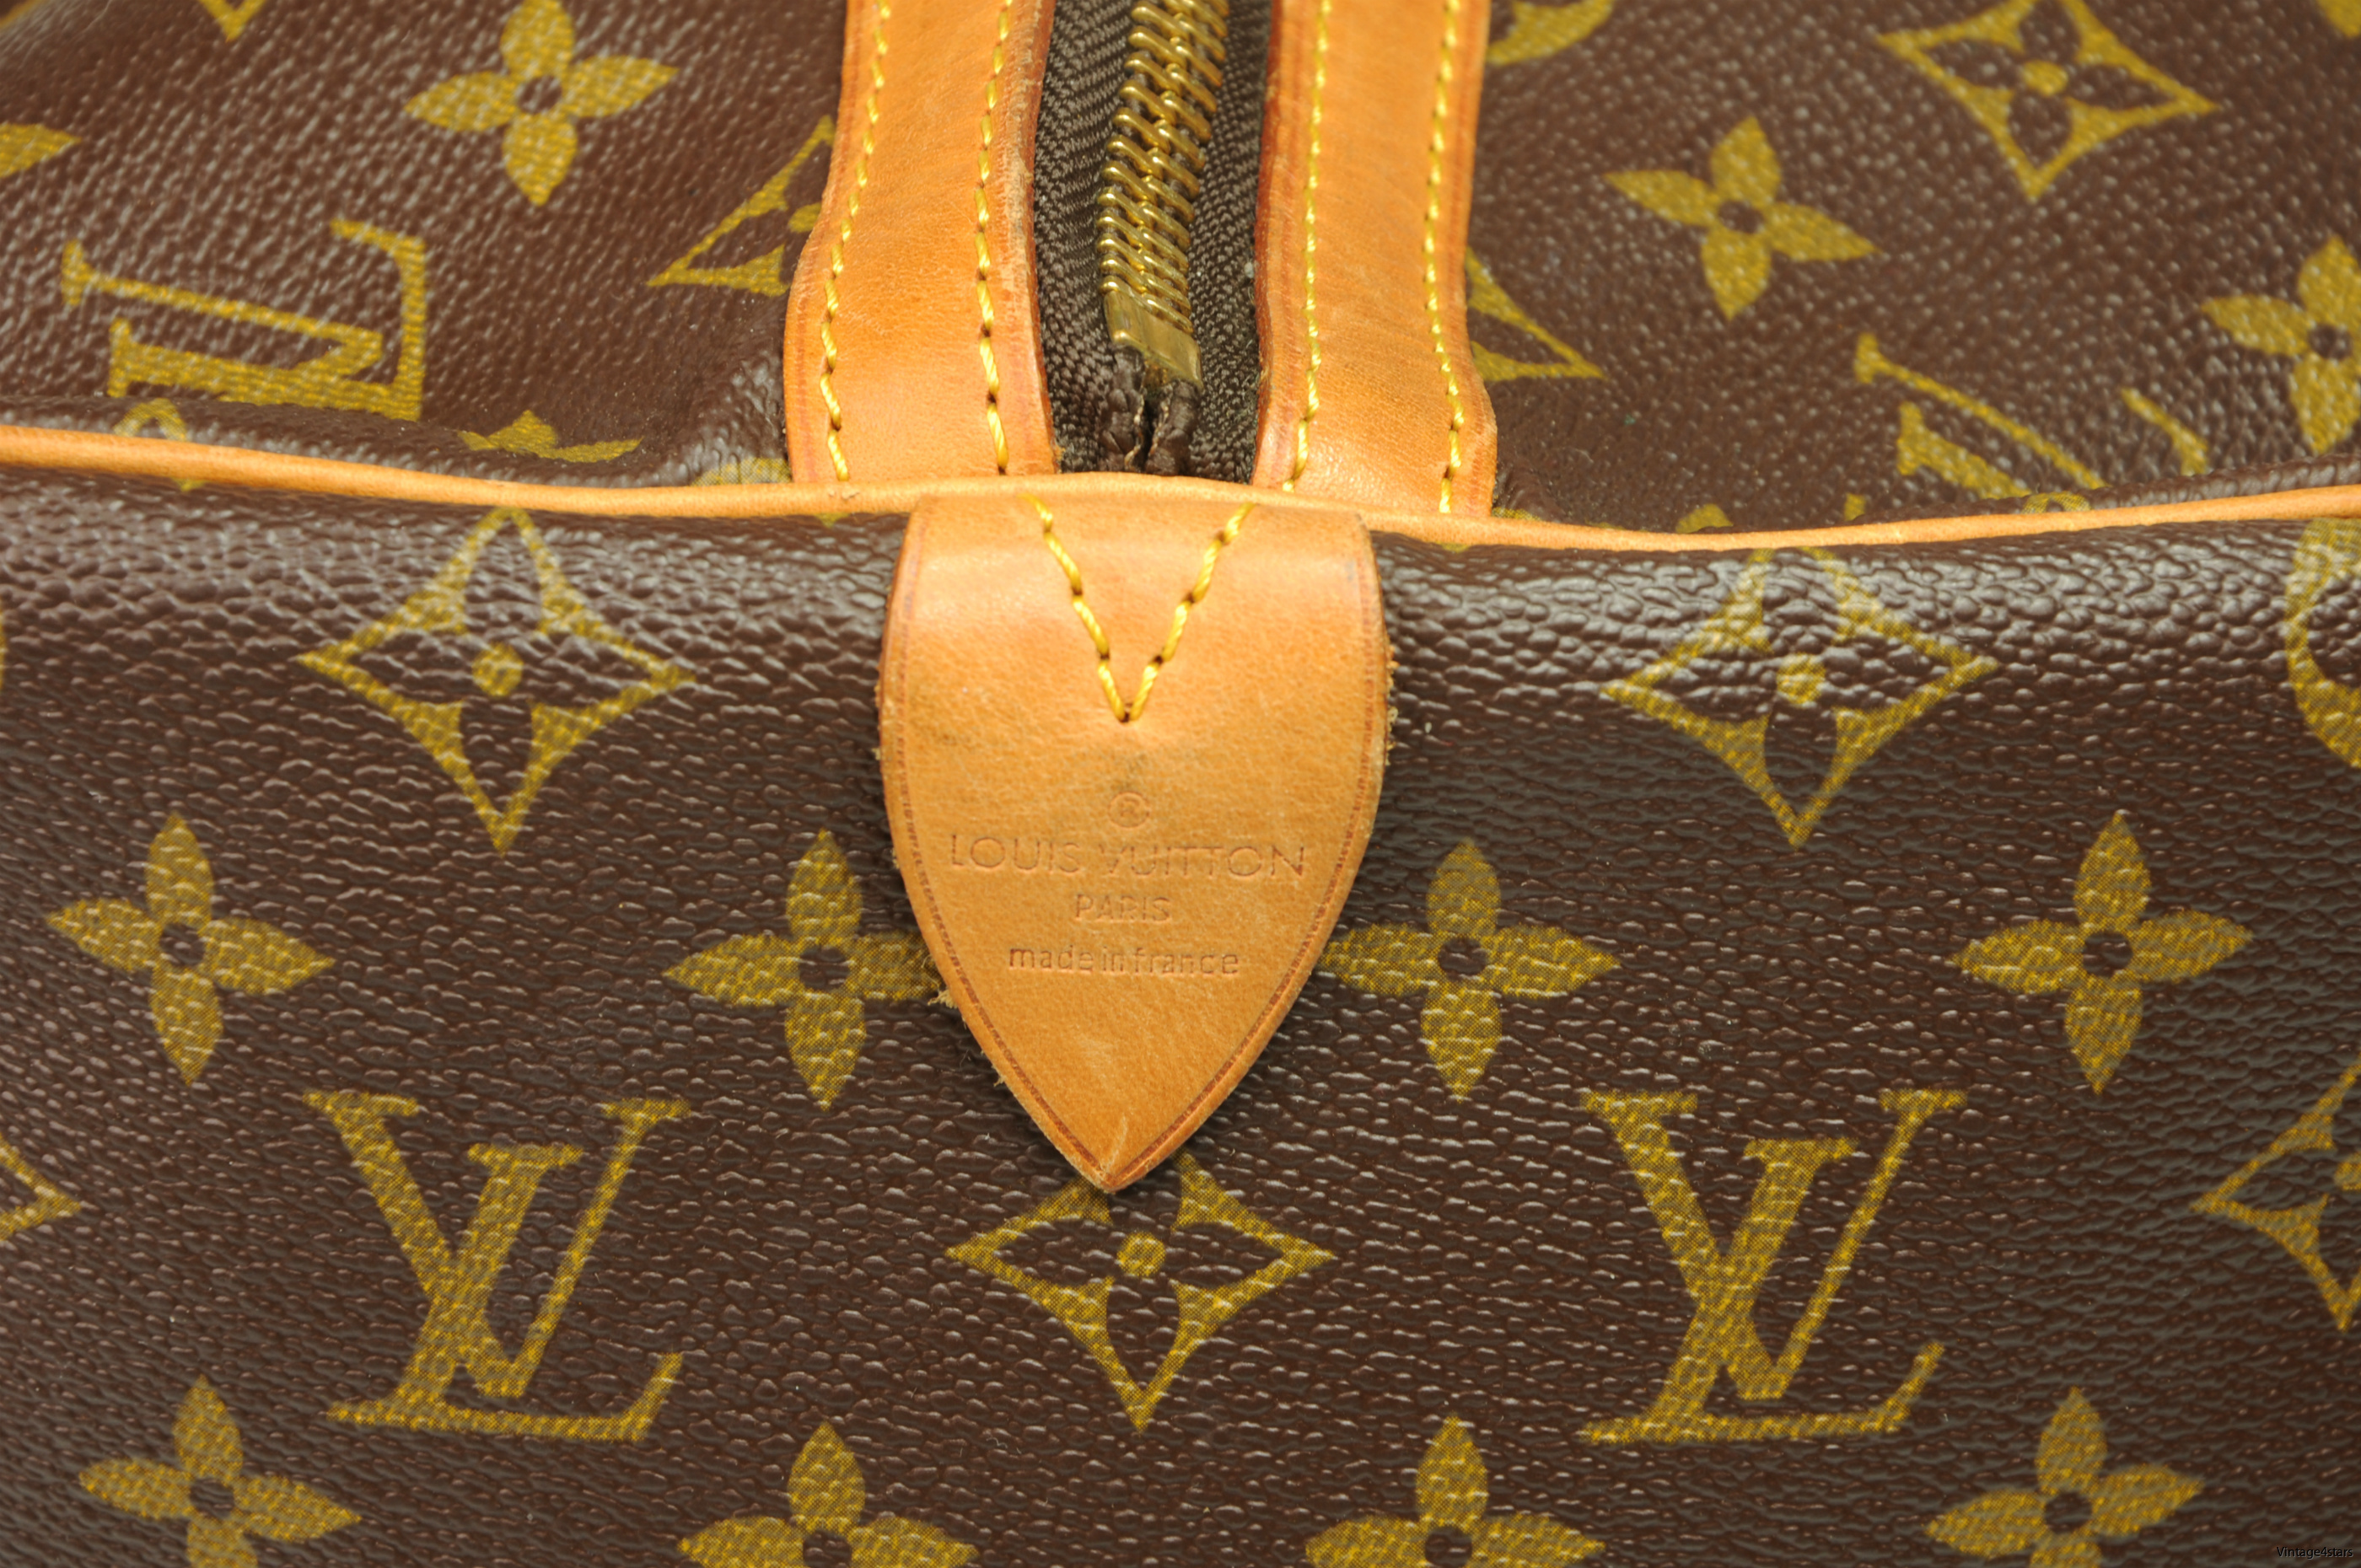 Louis Vuitton Sac Souple 45 8a